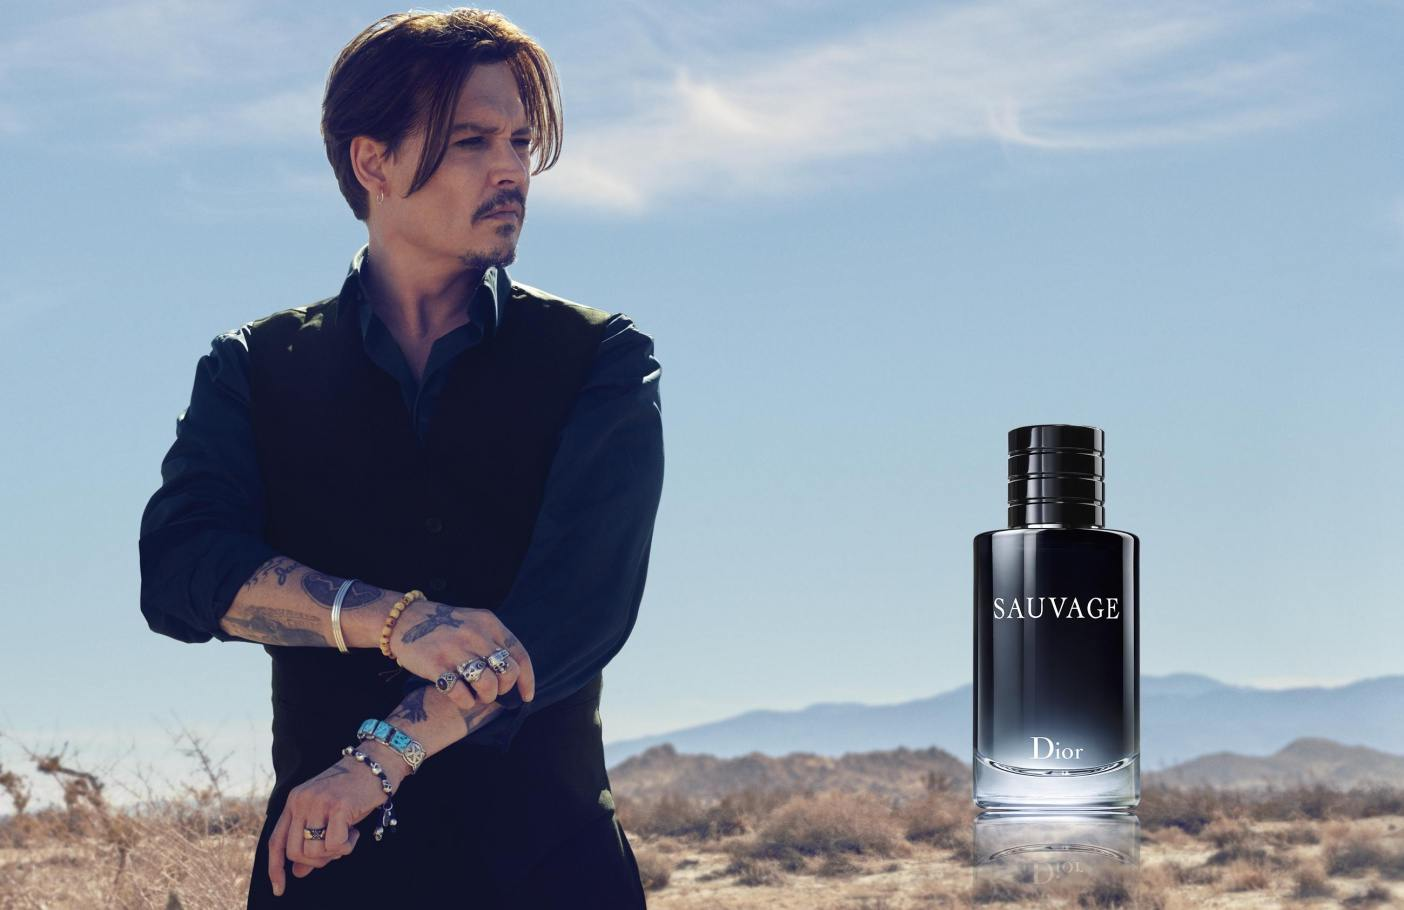 parfum dior johny depp g rie brute et noble de sauvage. Black Bedroom Furniture Sets. Home Design Ideas